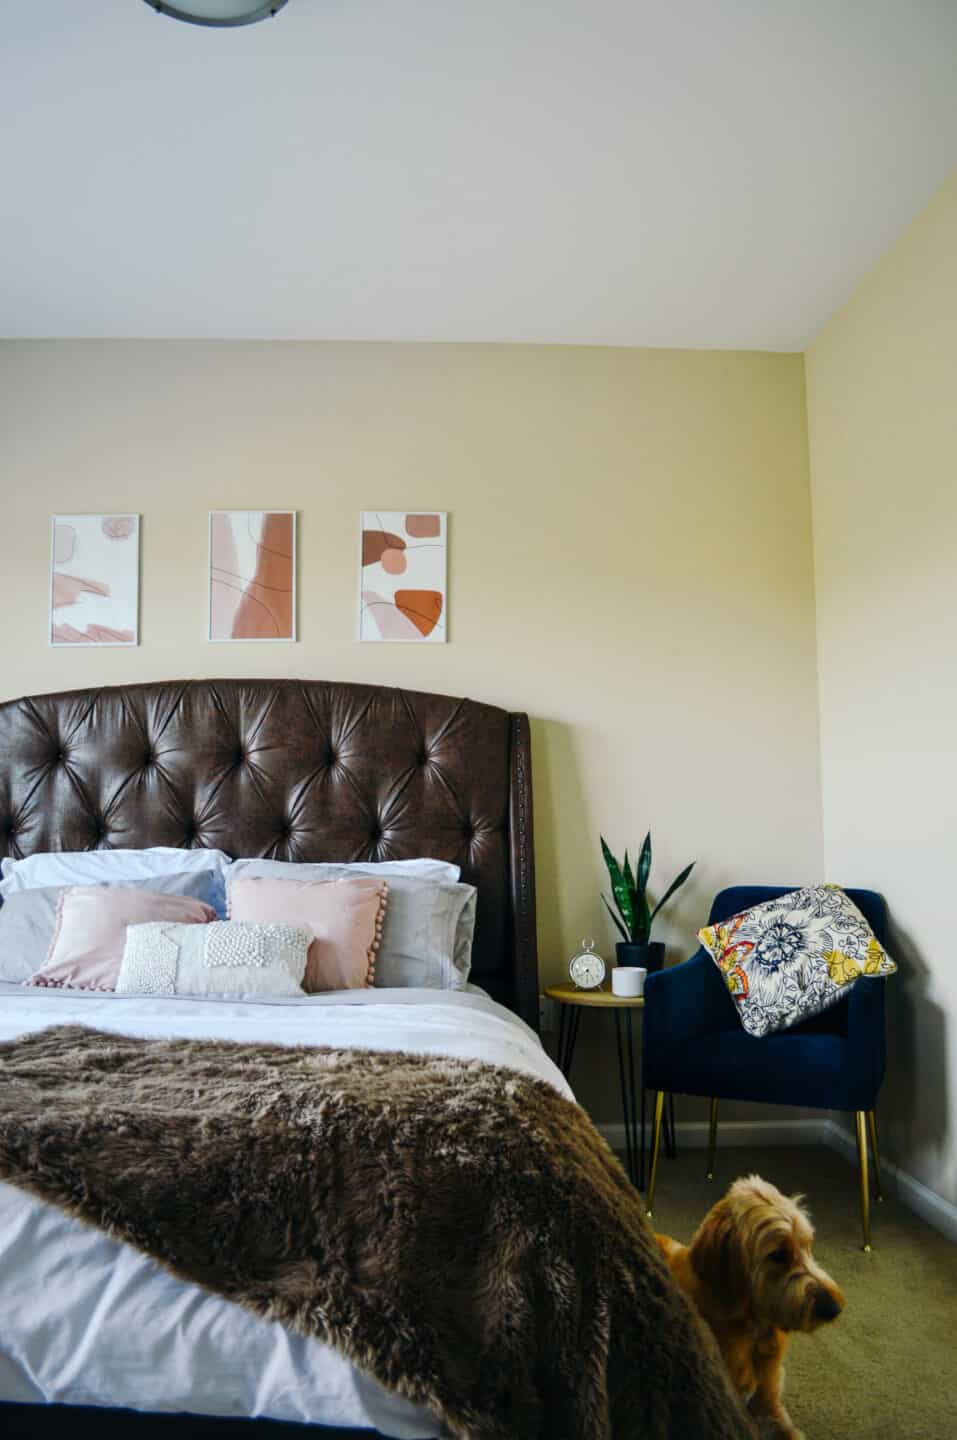 Easy Bedroom Refresh with Rooms to Go